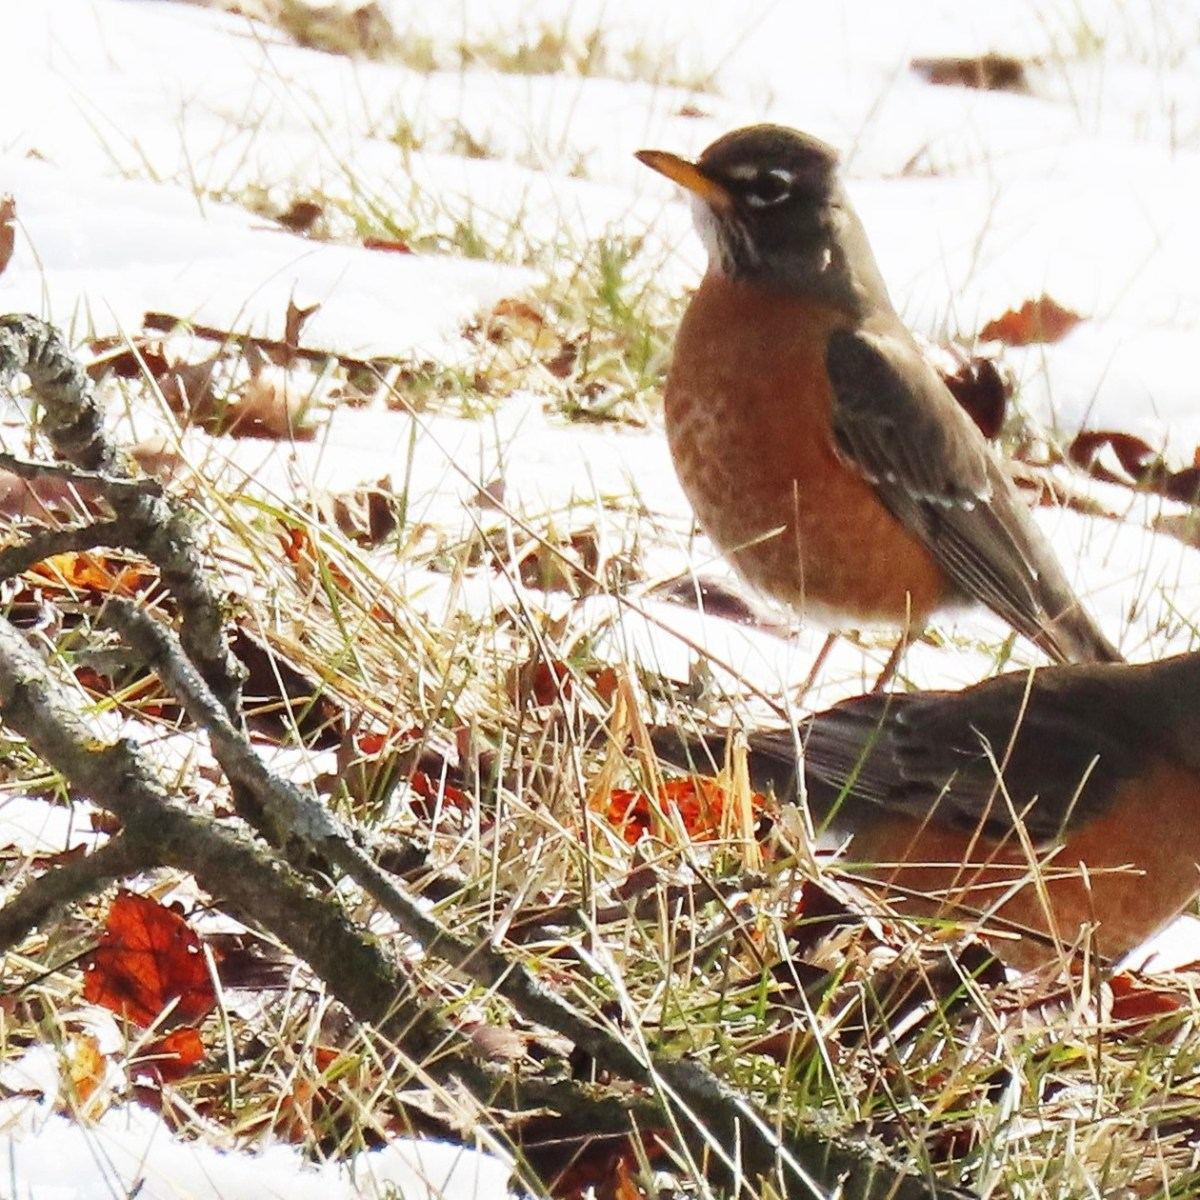 Two Robins hunt and peck for worms